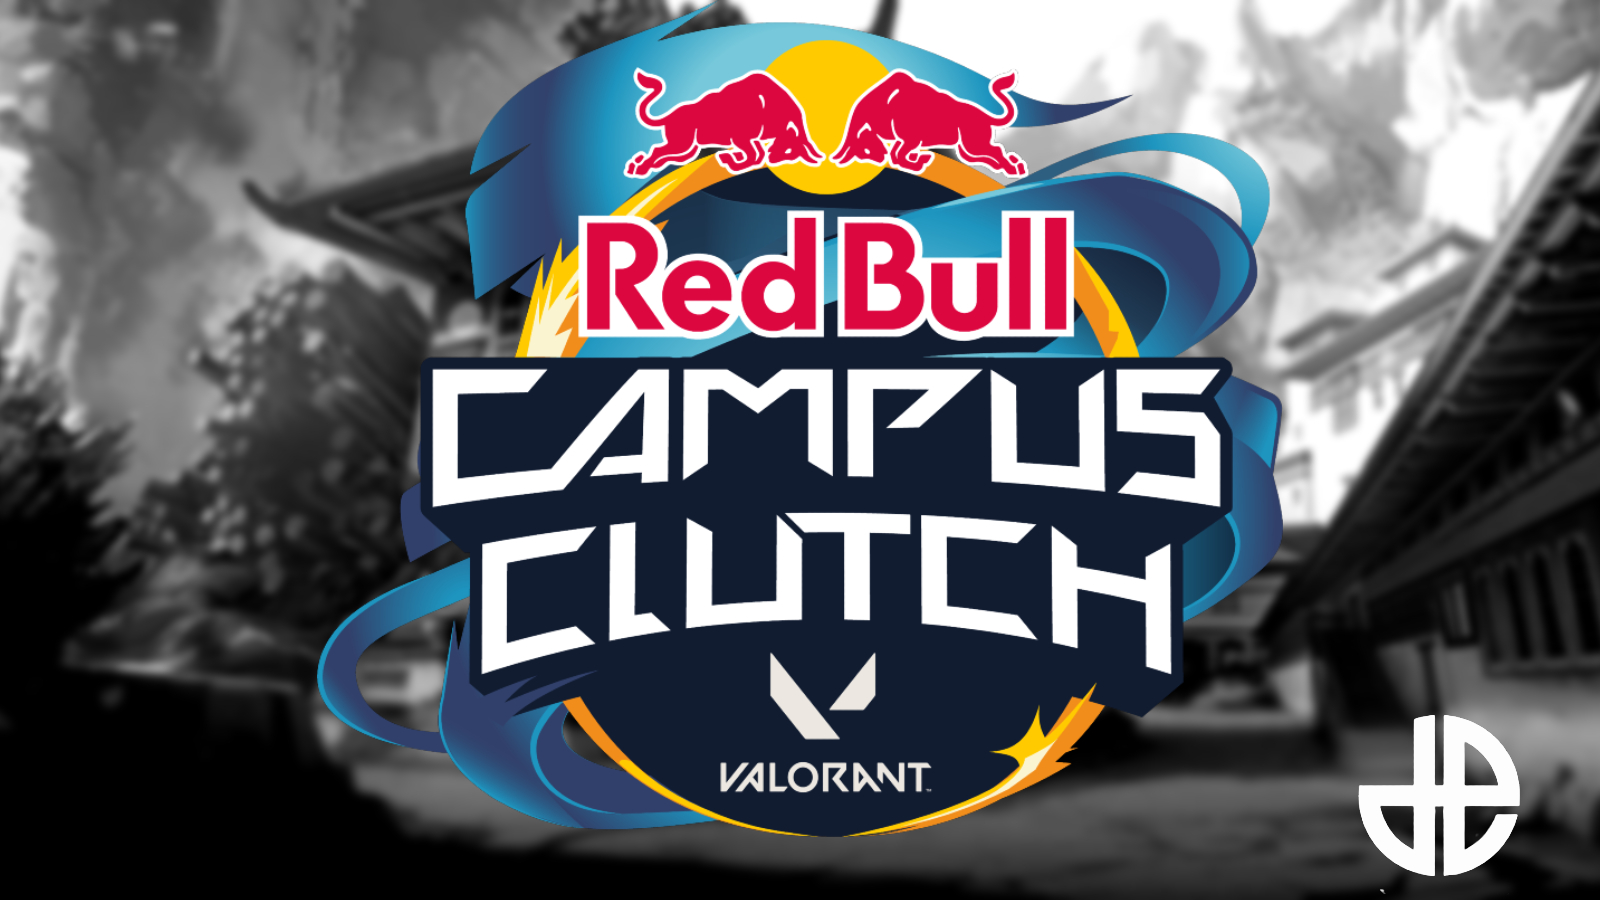 Red Bull Campus Clutch Valorant Competition Riot Games